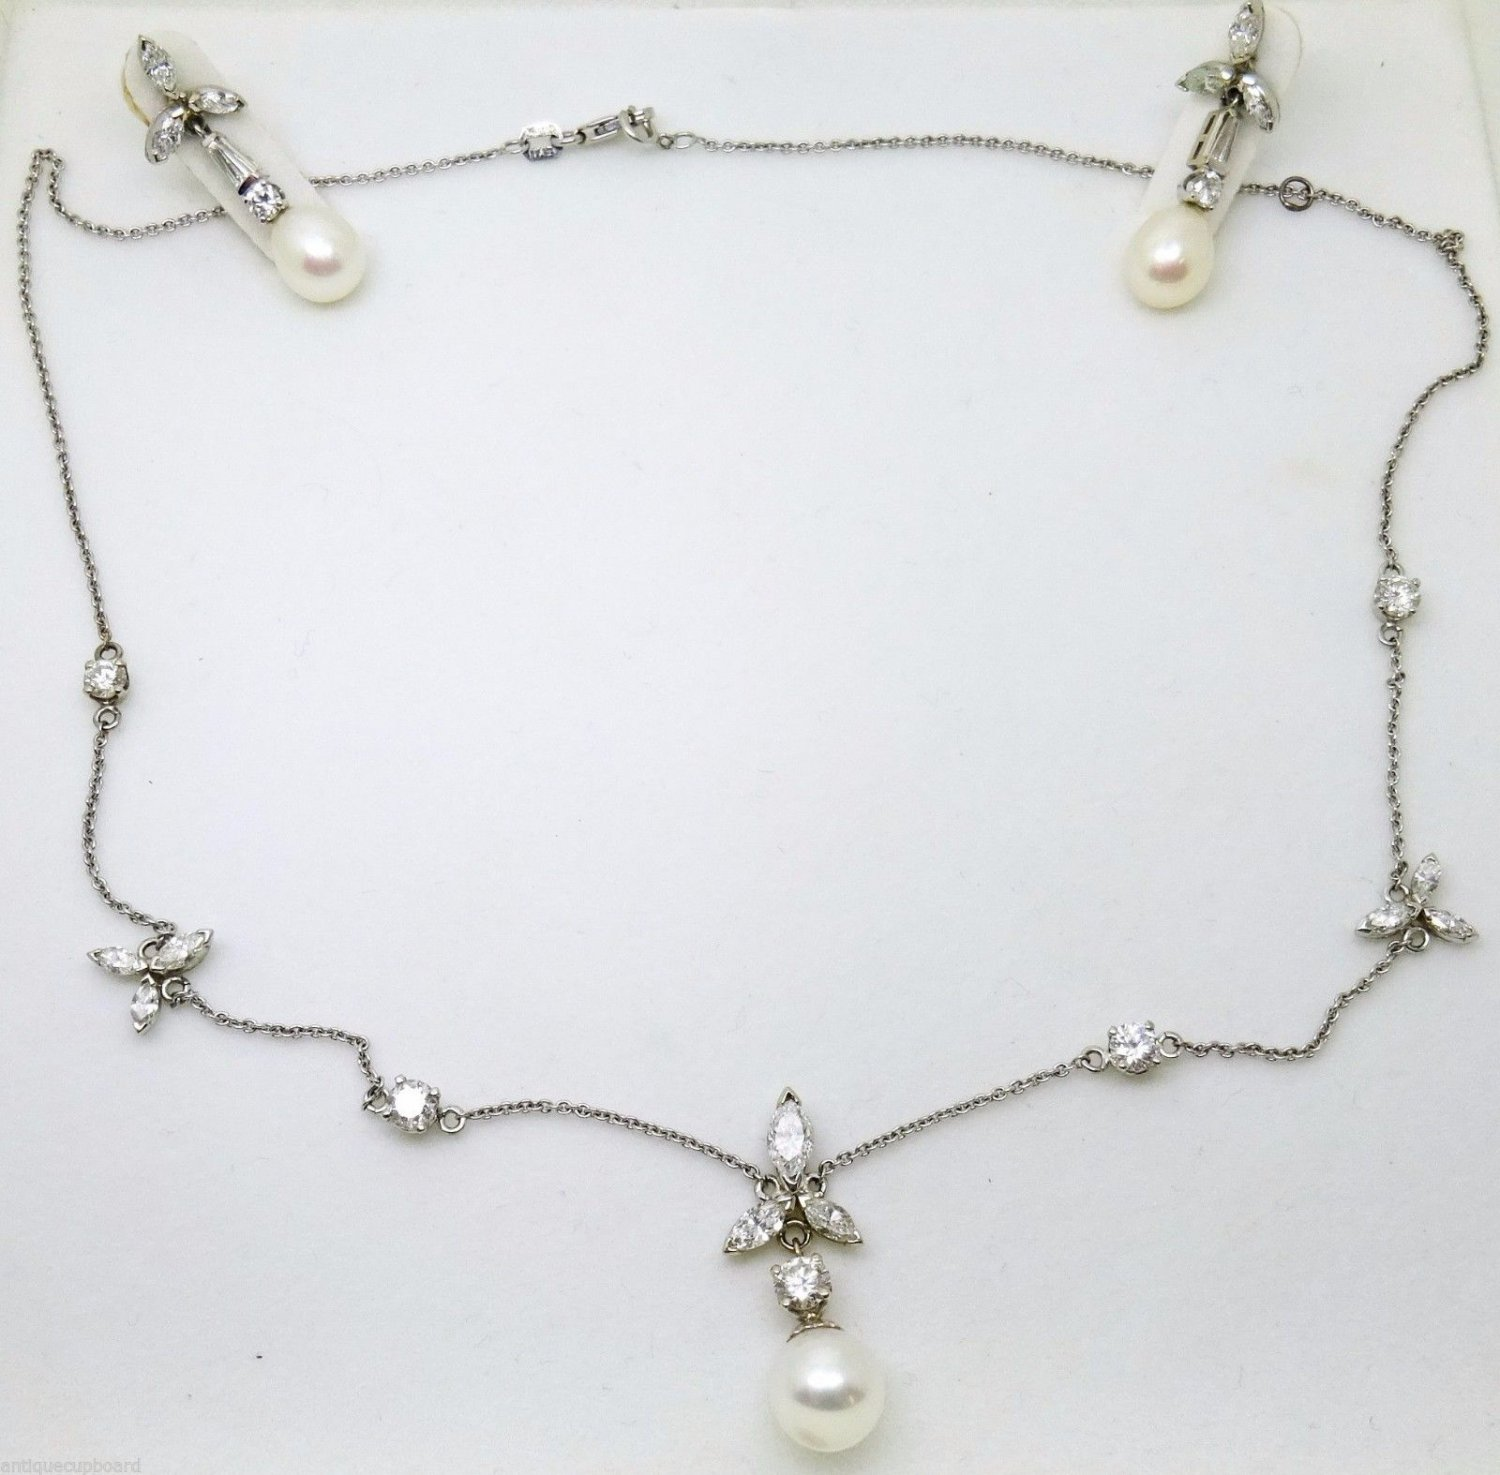 14K Gold Necklace & Earring Set with Pearls & Diamonds (#3129)